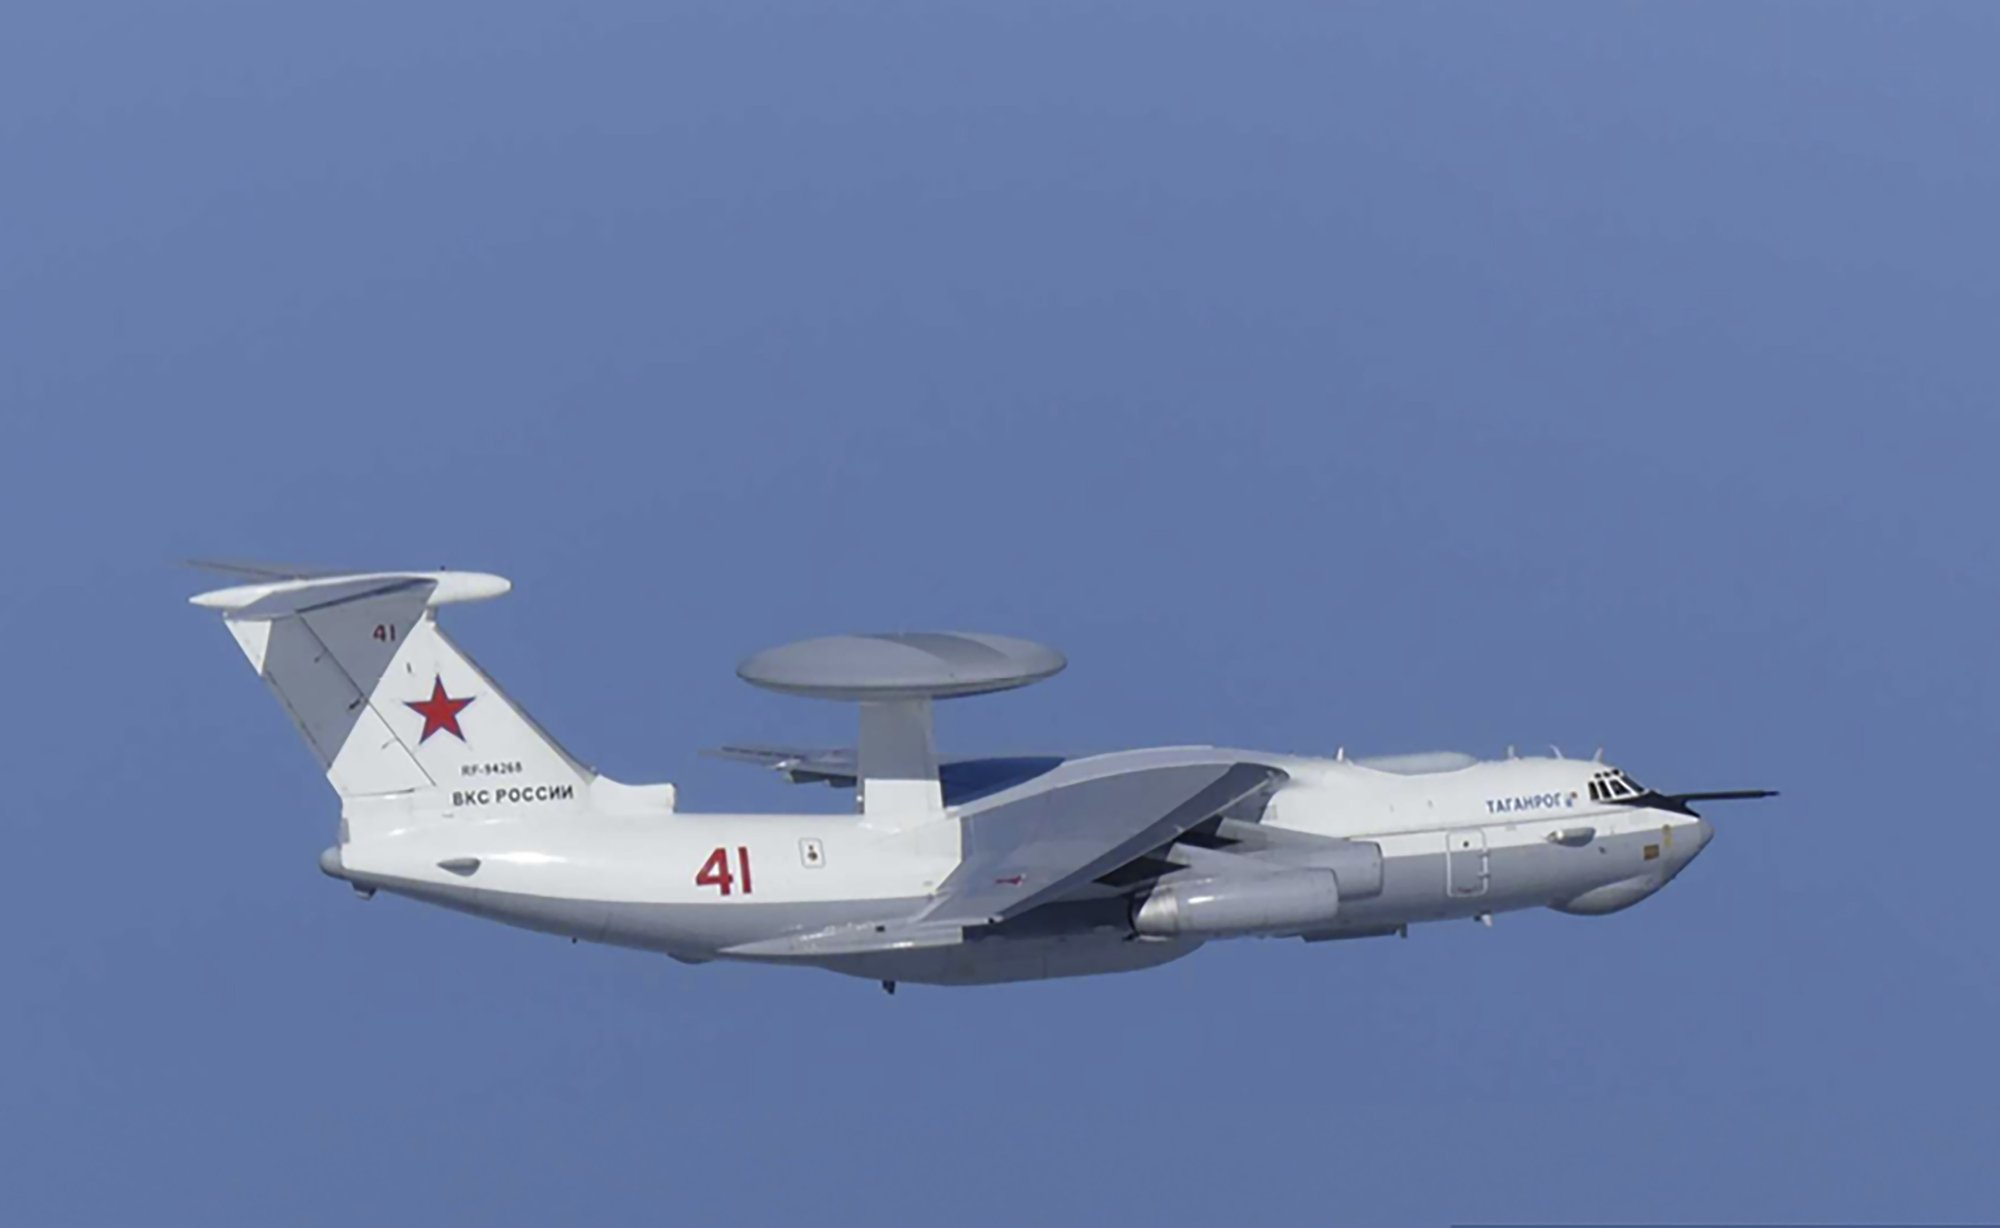 S. Korea, Russia differ over warning shots fired at jets